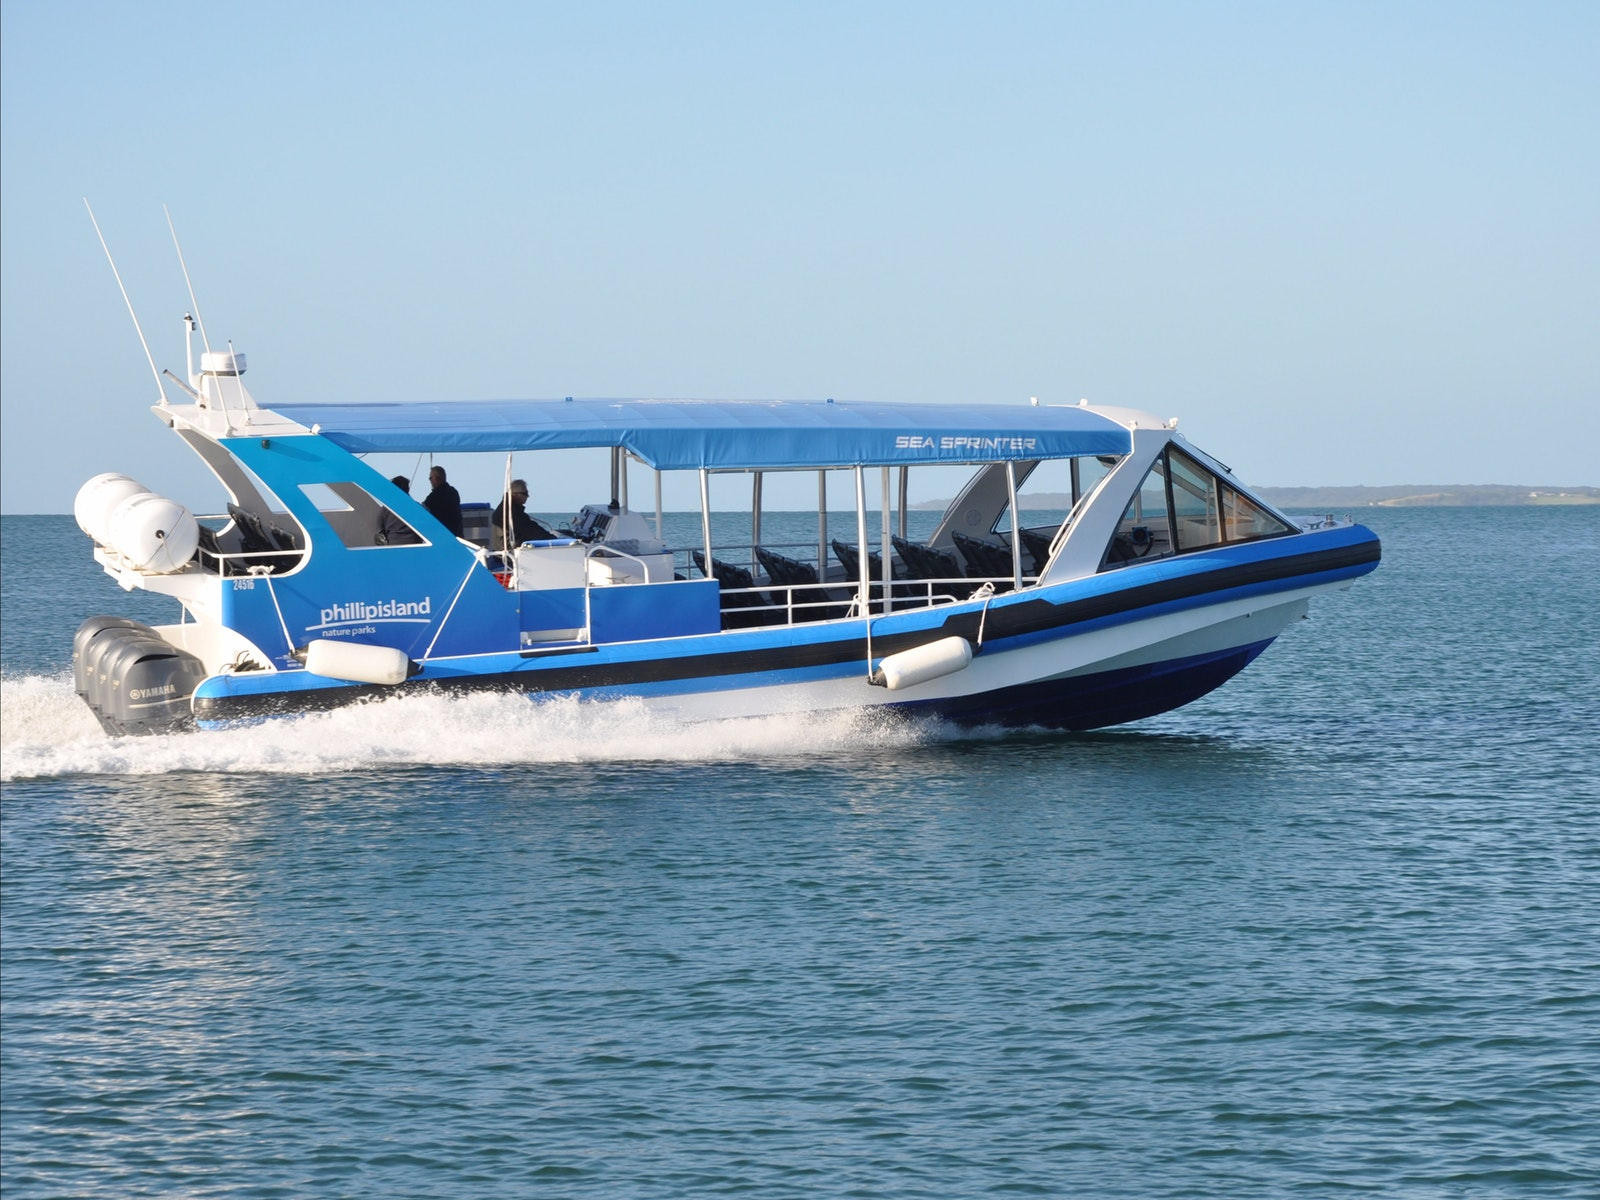 Wild Oceans EcoBoat Tour - EcoBoat in action